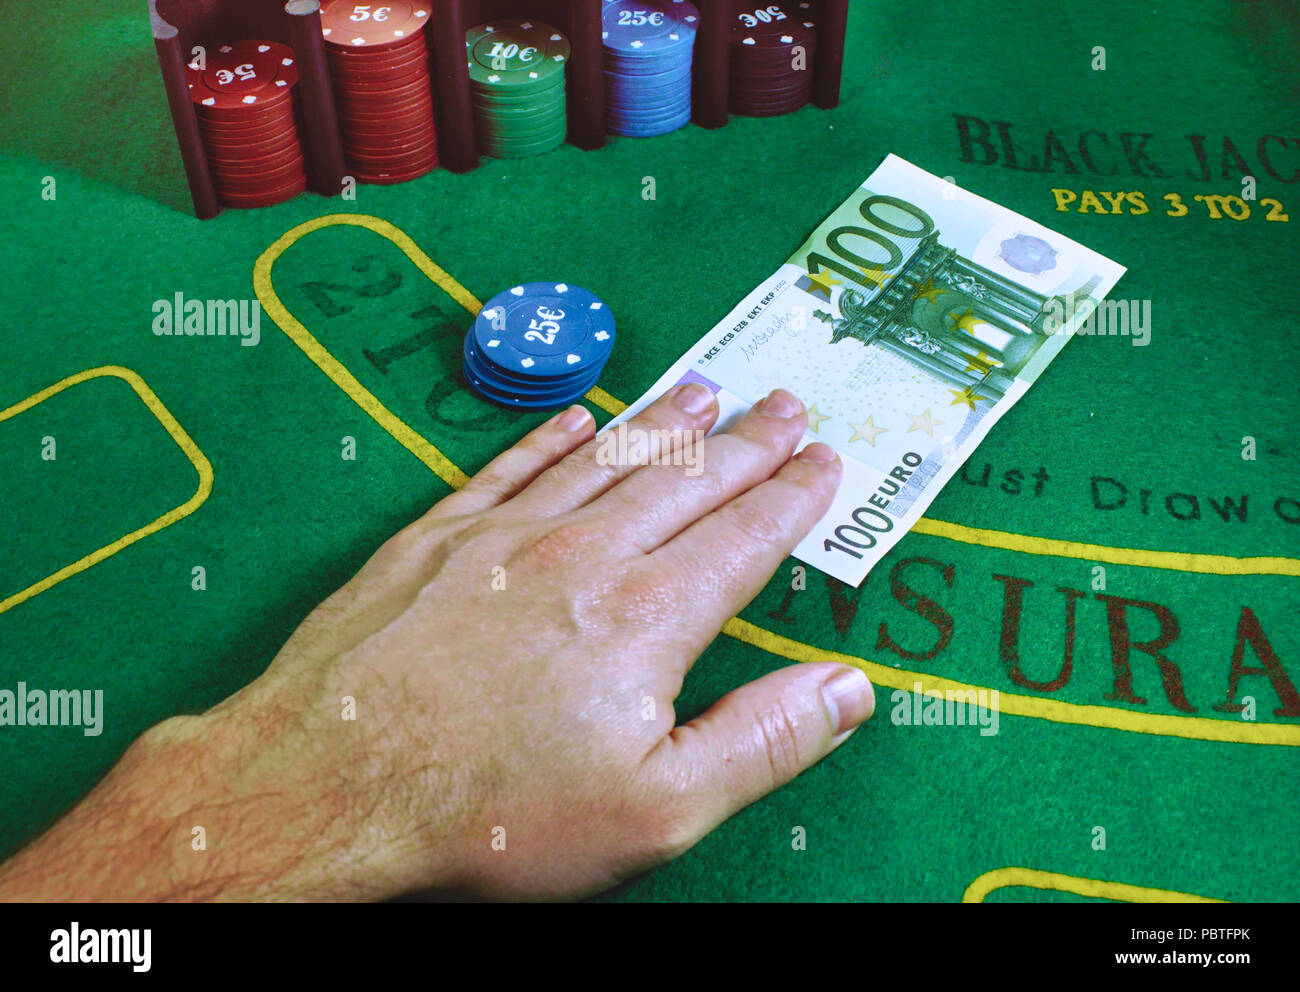 100 Euro note being exchanged for gaming chips on a green felt Blackjack table at the casino - Stock Image